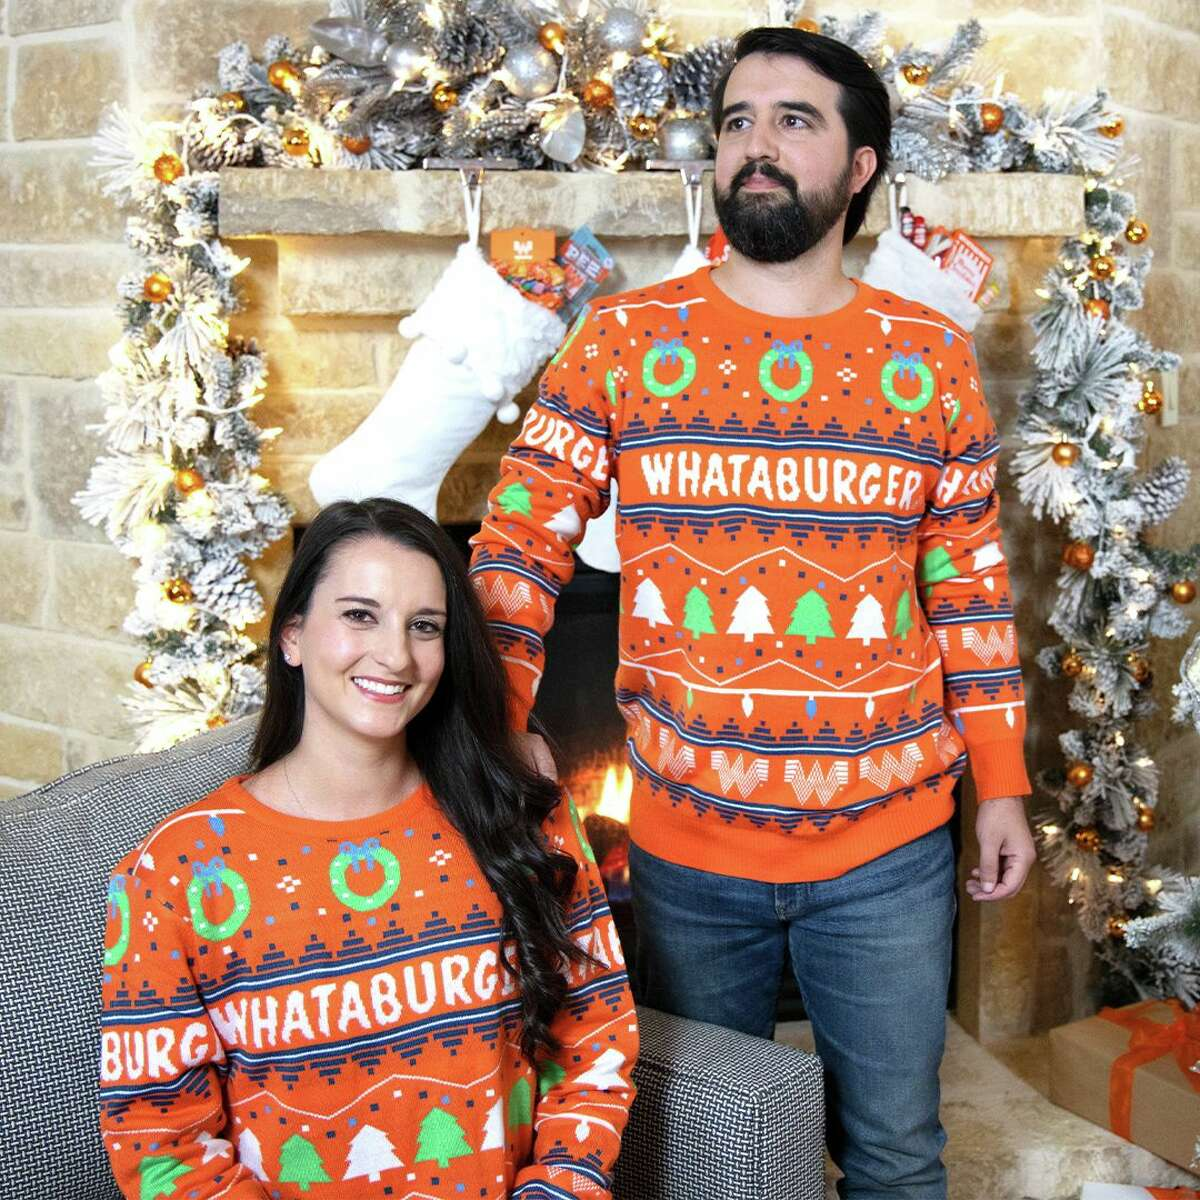 Starting Tuesday, you can purchase Whataburger's new festive holiday sweater.